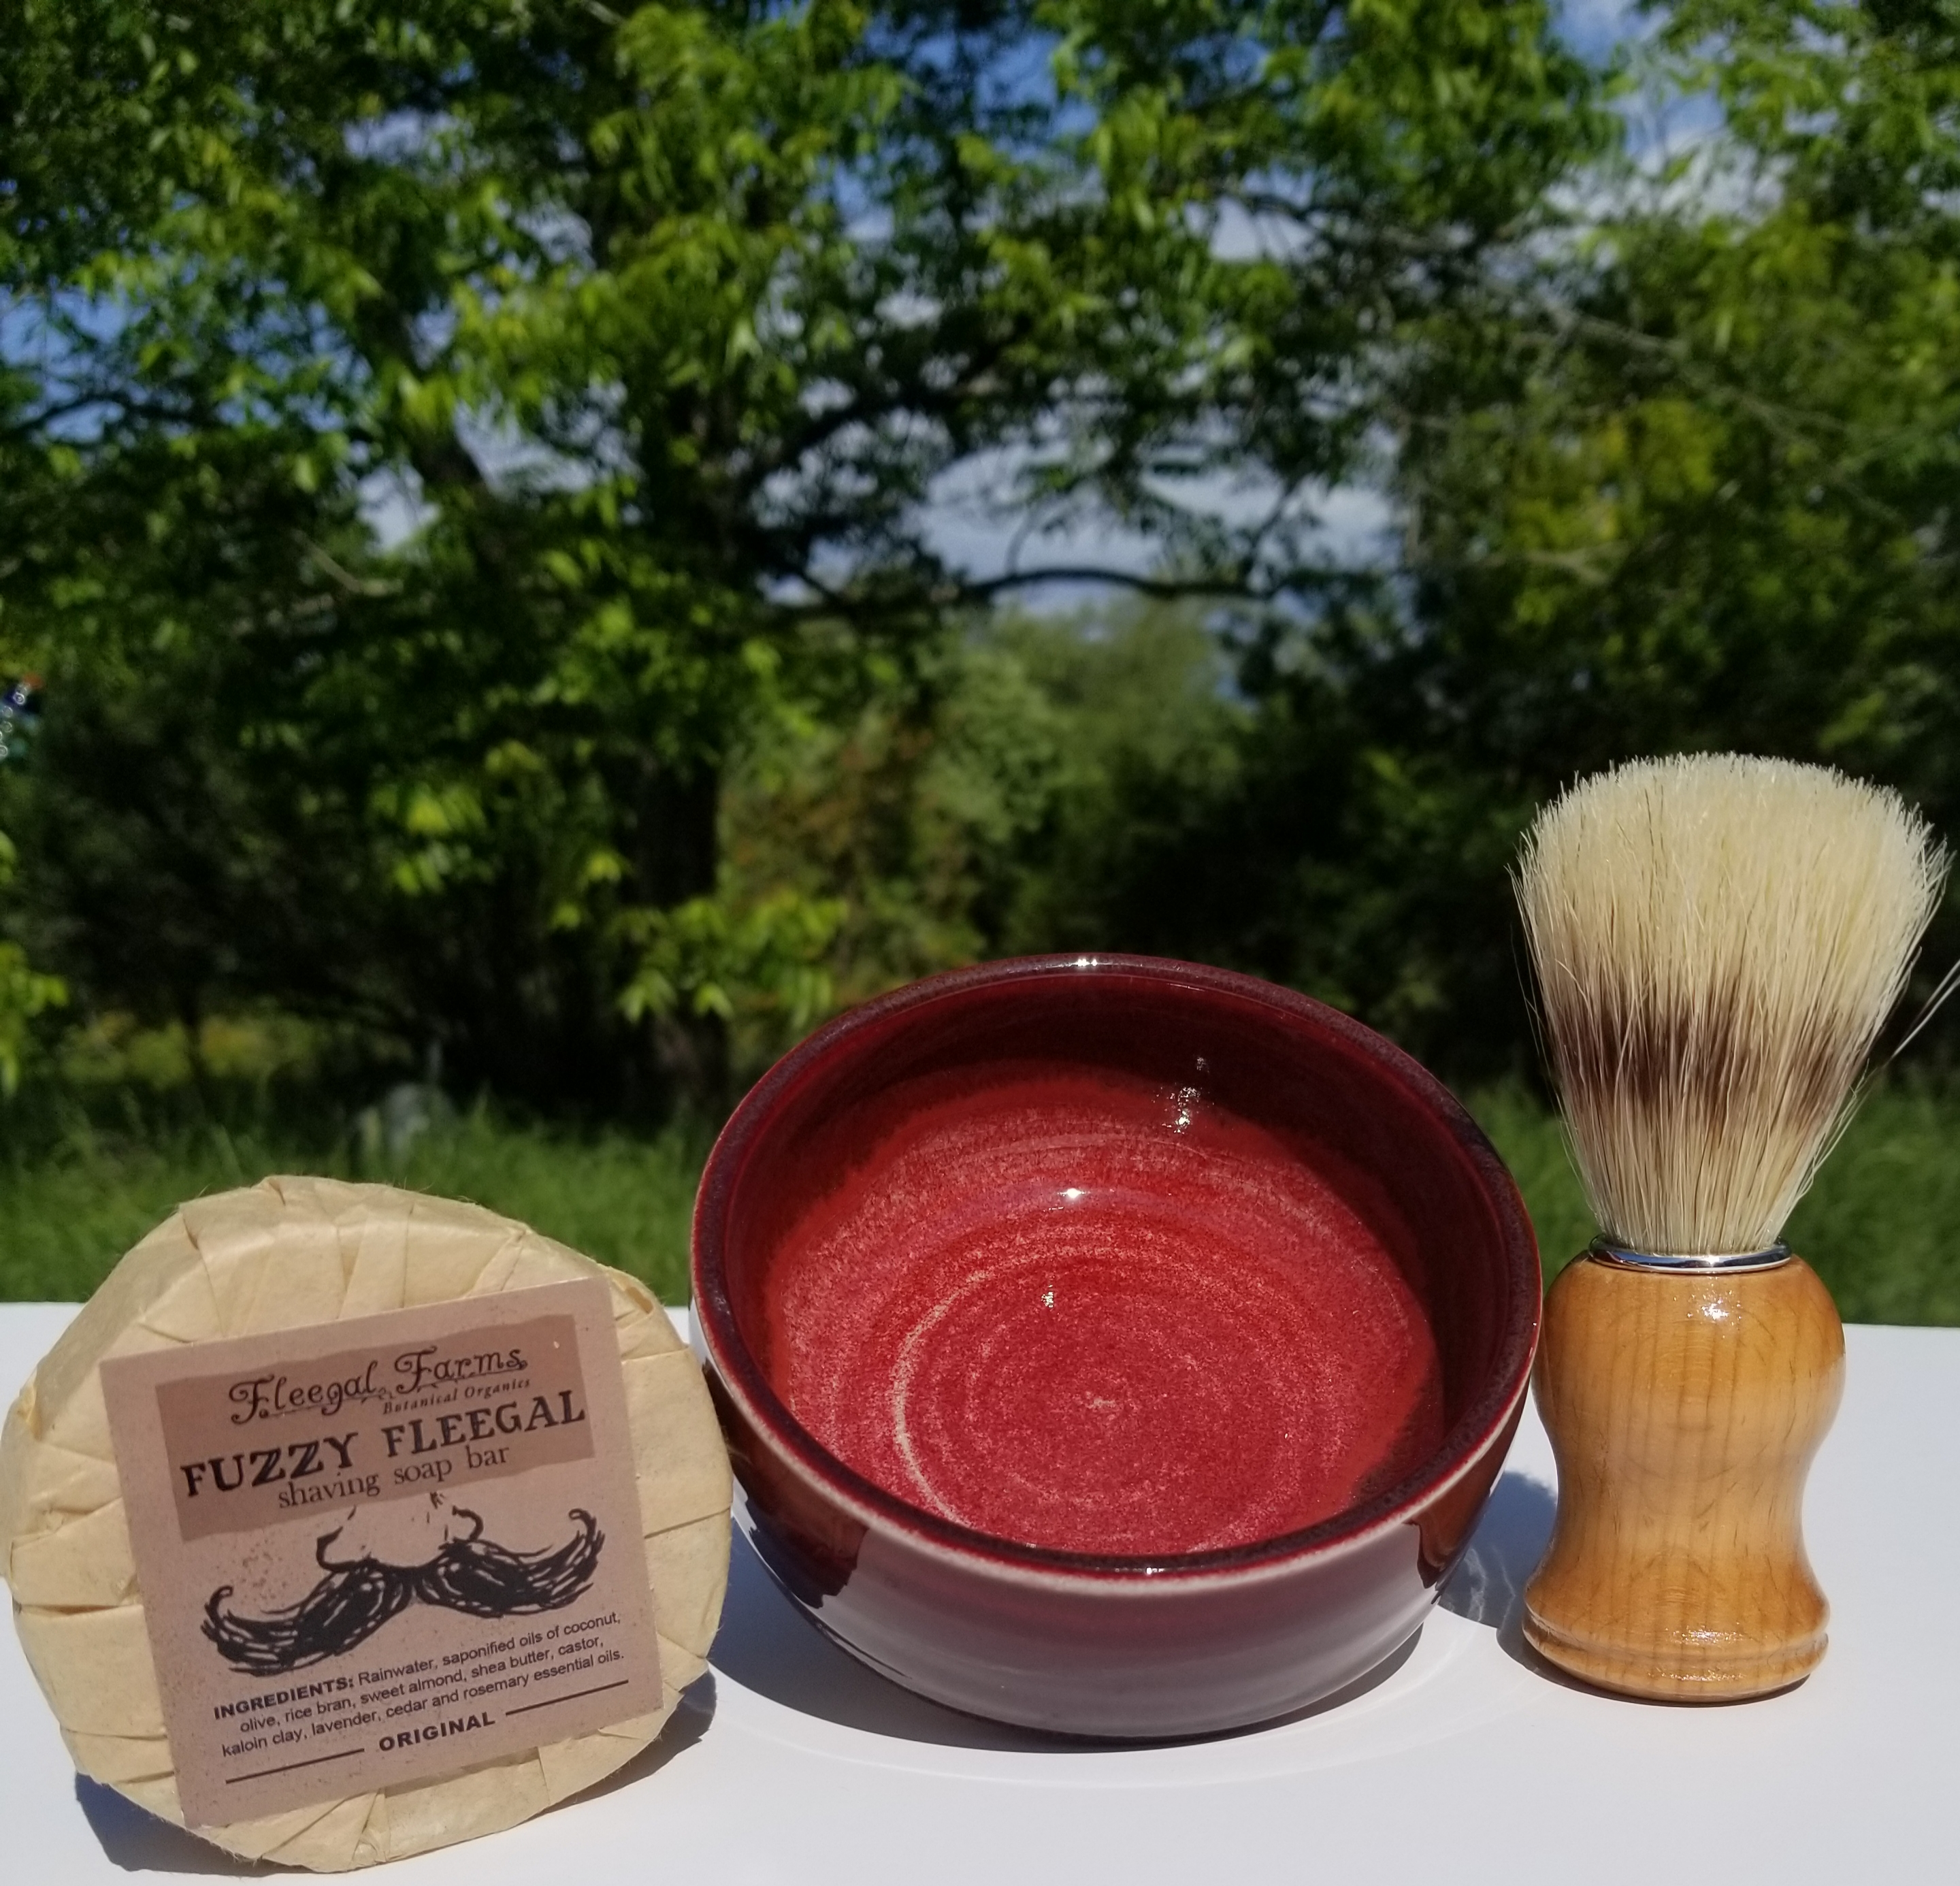 Shave Set #8 w/ Fuzzy Fleegal (Original)